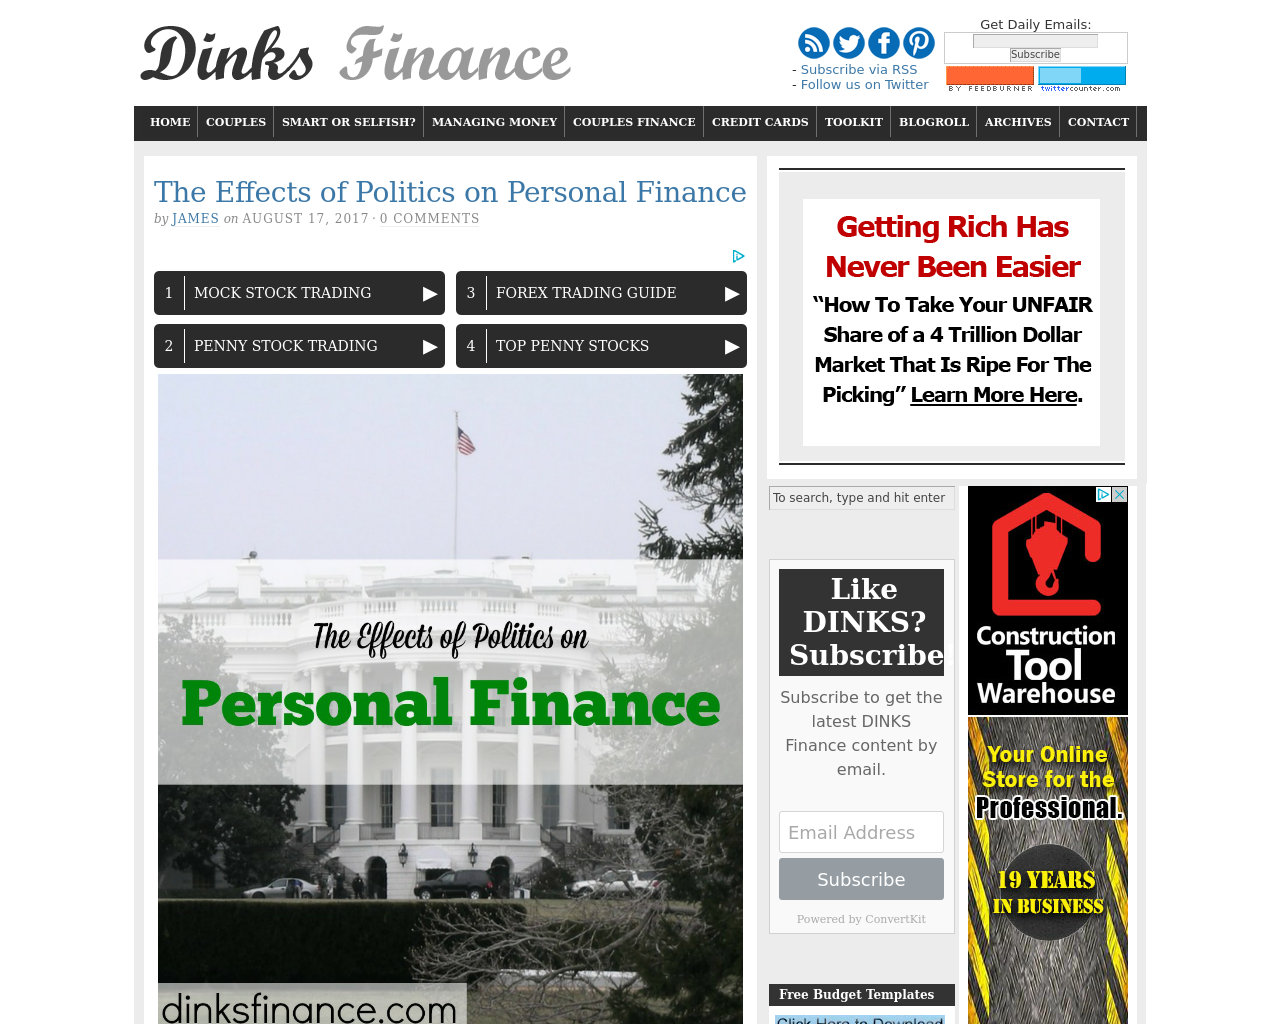 Dinks-Finance-Advertising-Reviews-Pricing